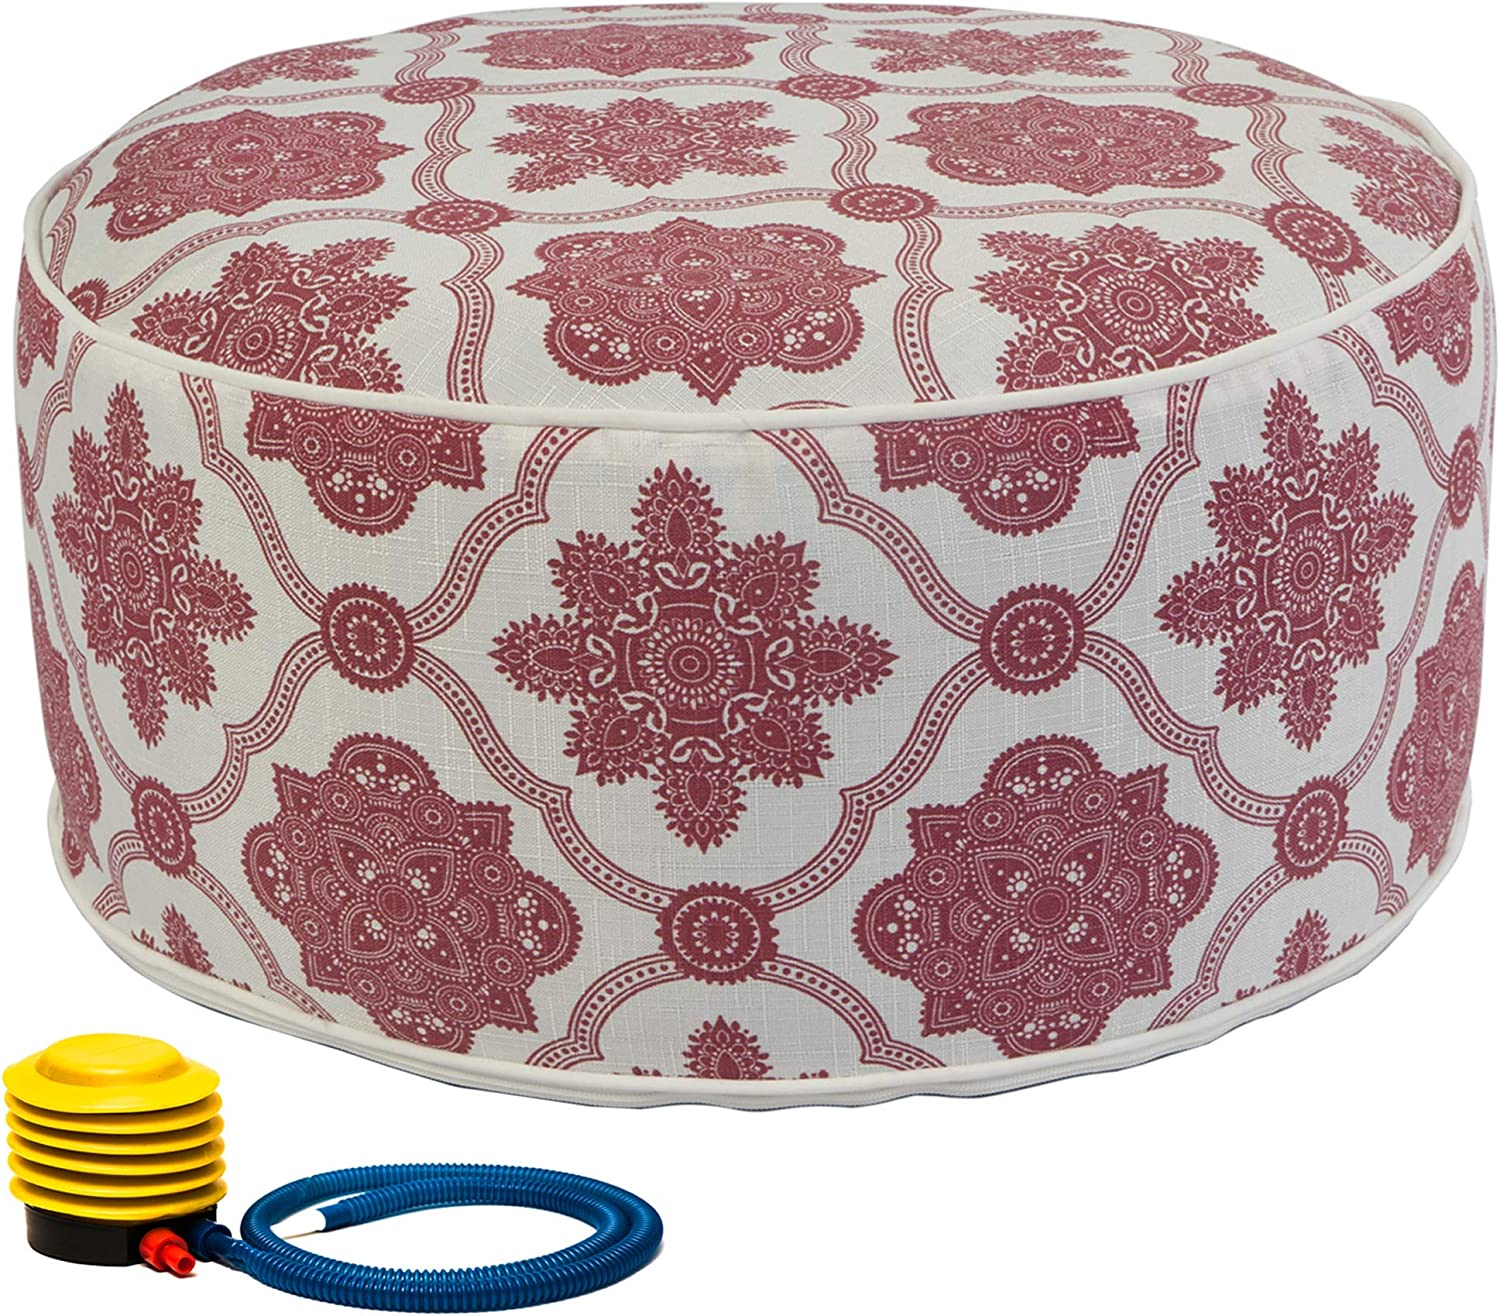 Kozyard Inflatable Stool Ottoman Used for Indoor or Outdoor, Kids or Adults, Camping or Home (Vintage Red)